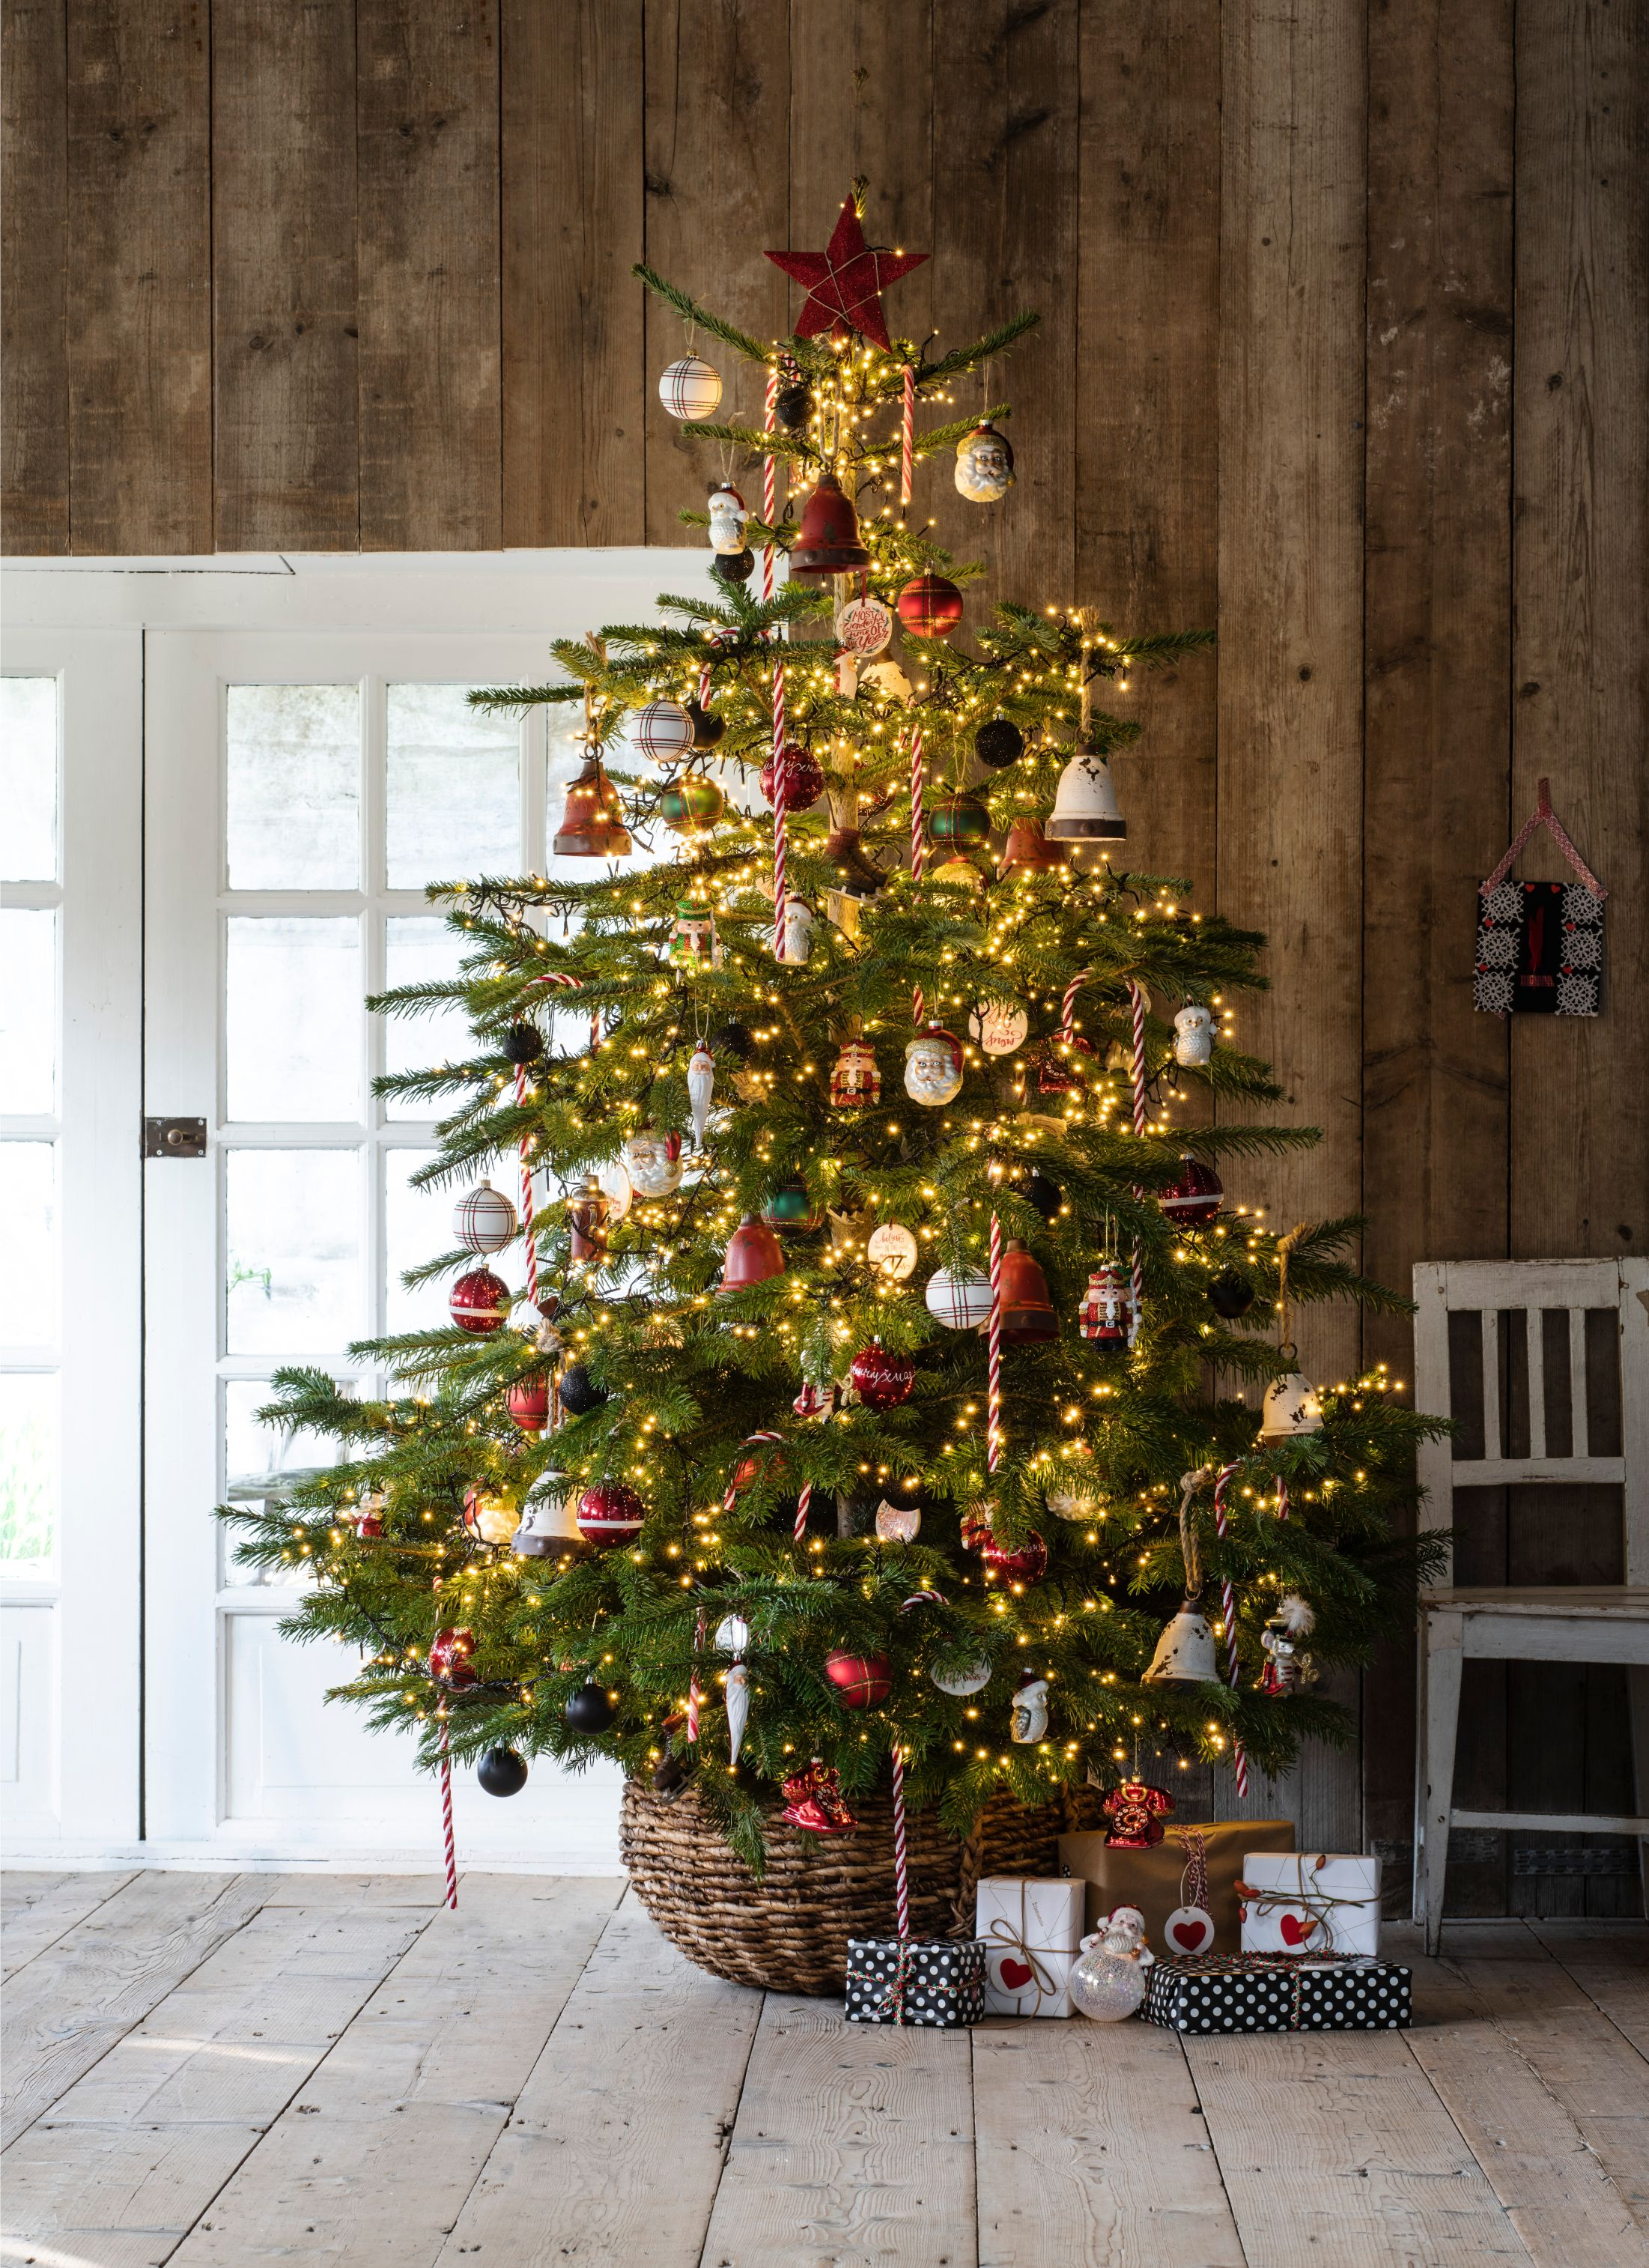 kersttrends intratuin 2019